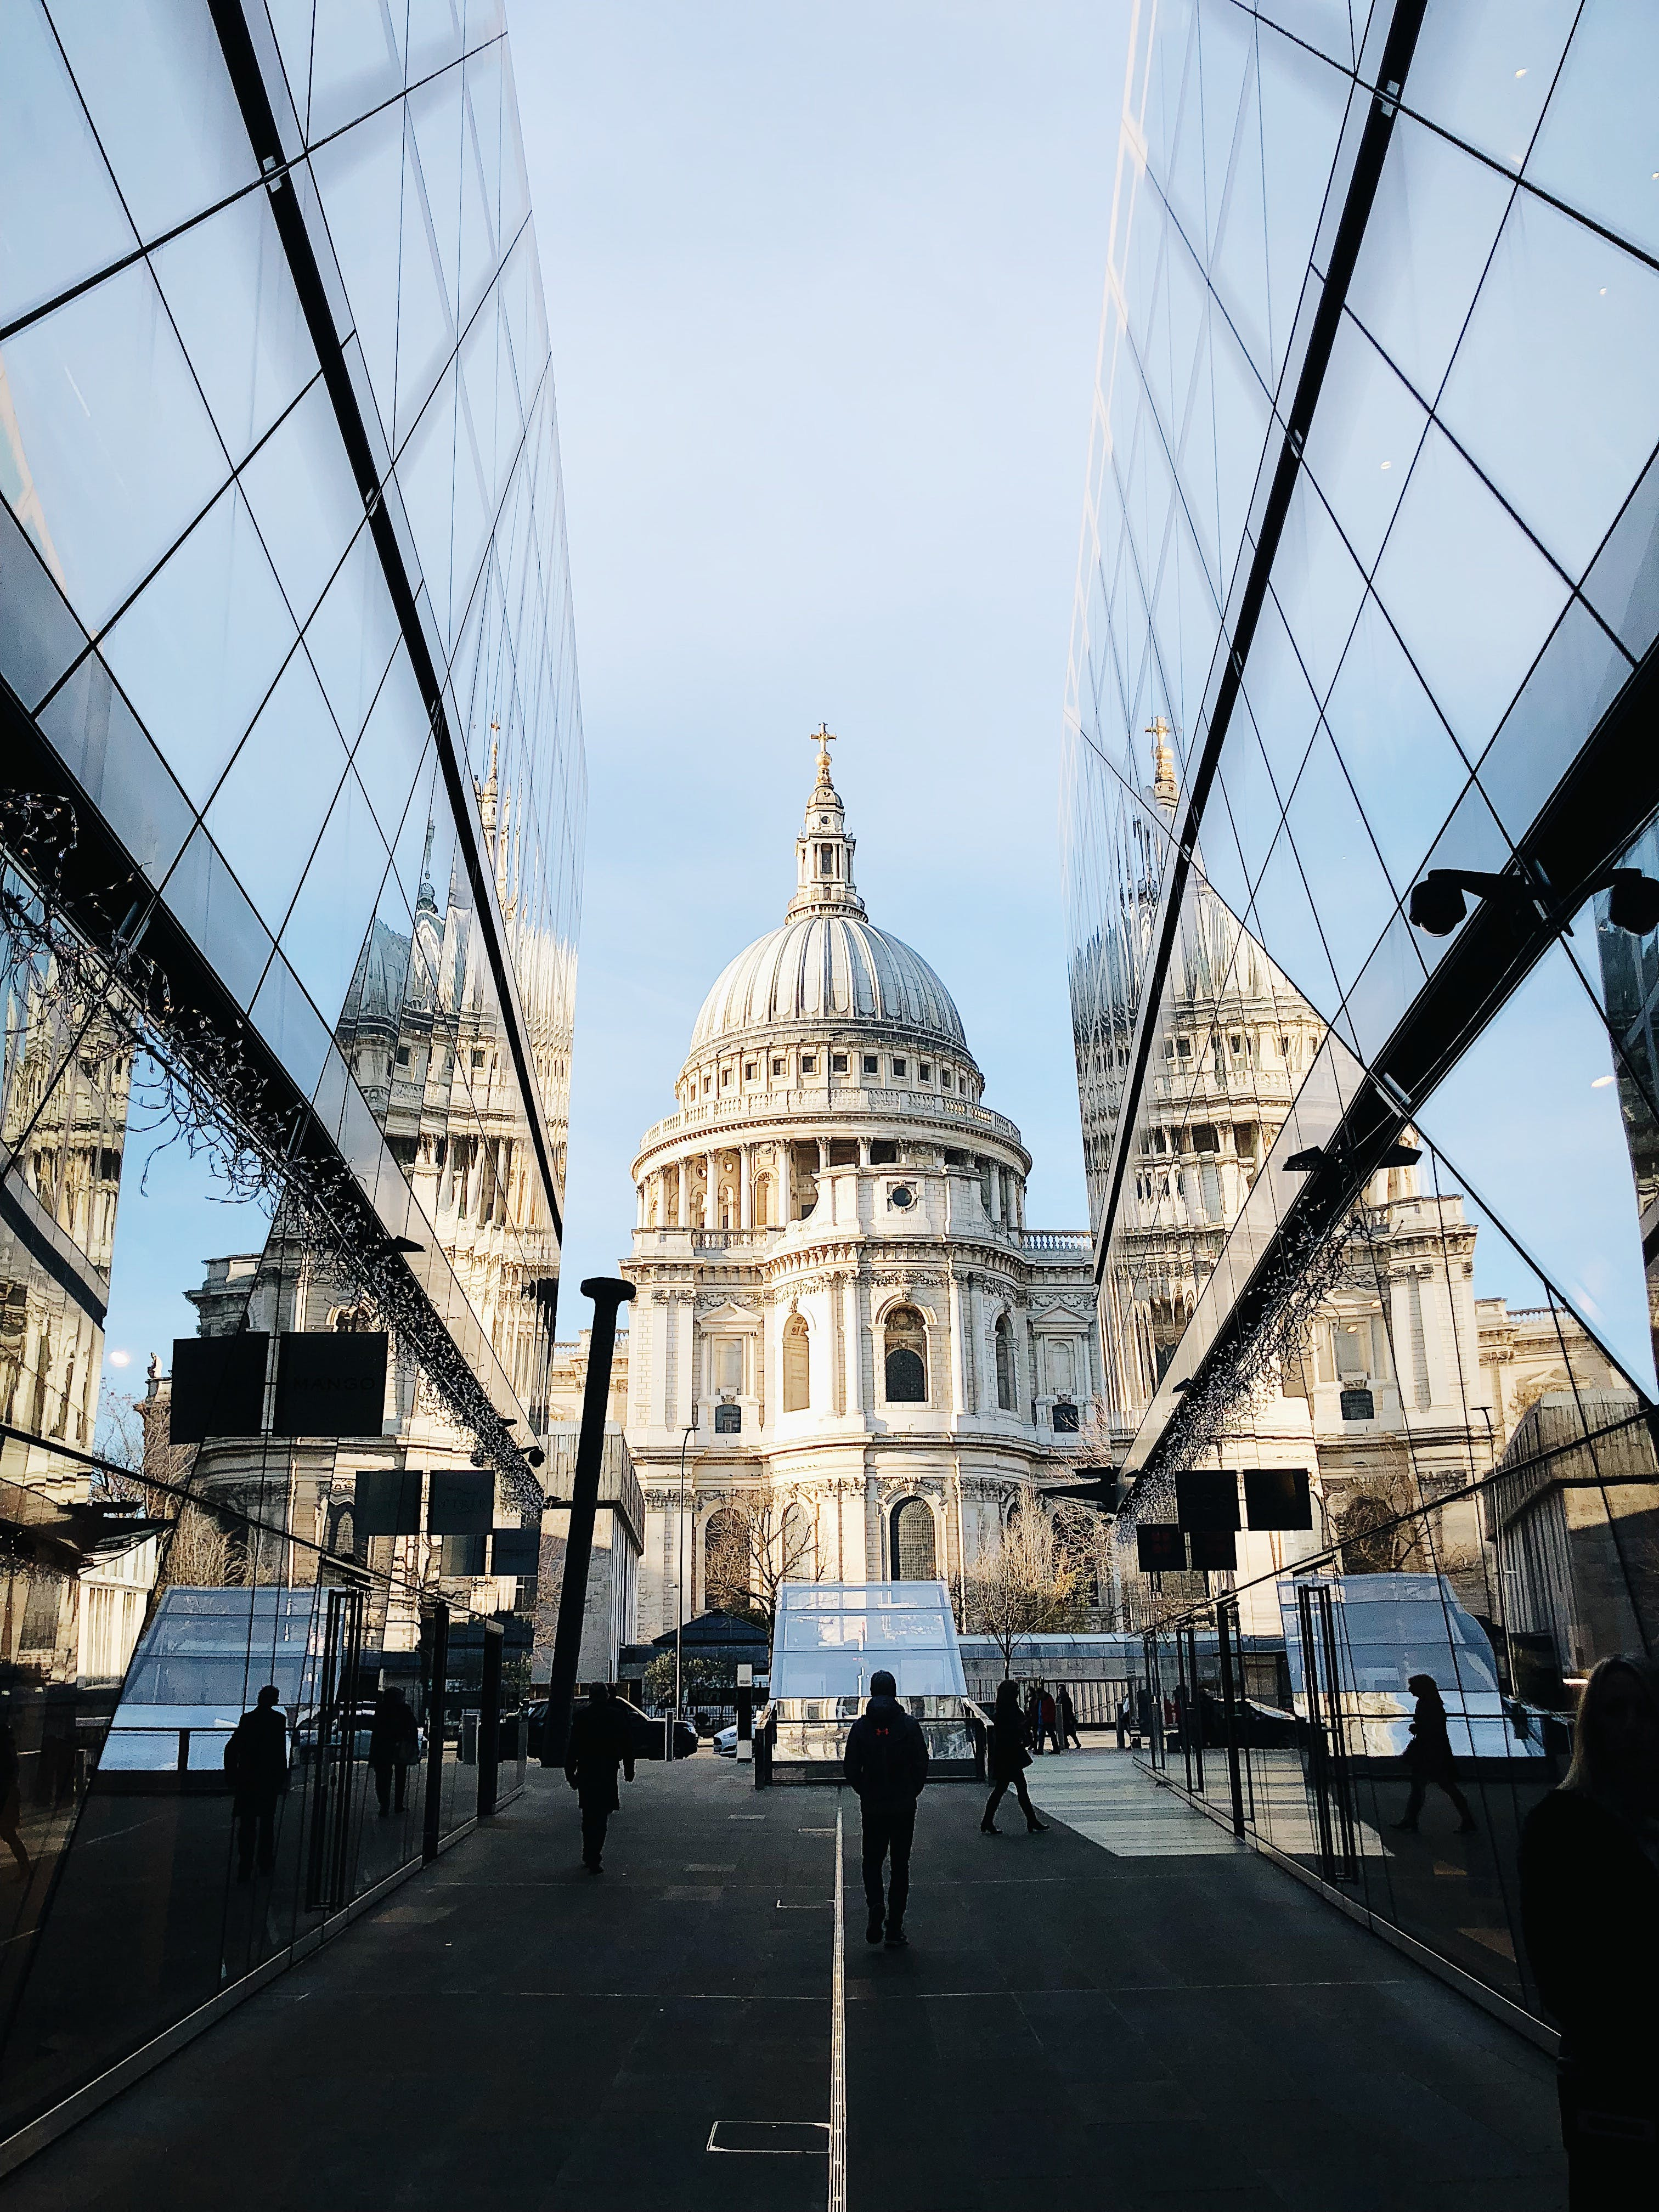 White Dome Cathedral in Between Curtain Wall Building at Daytime